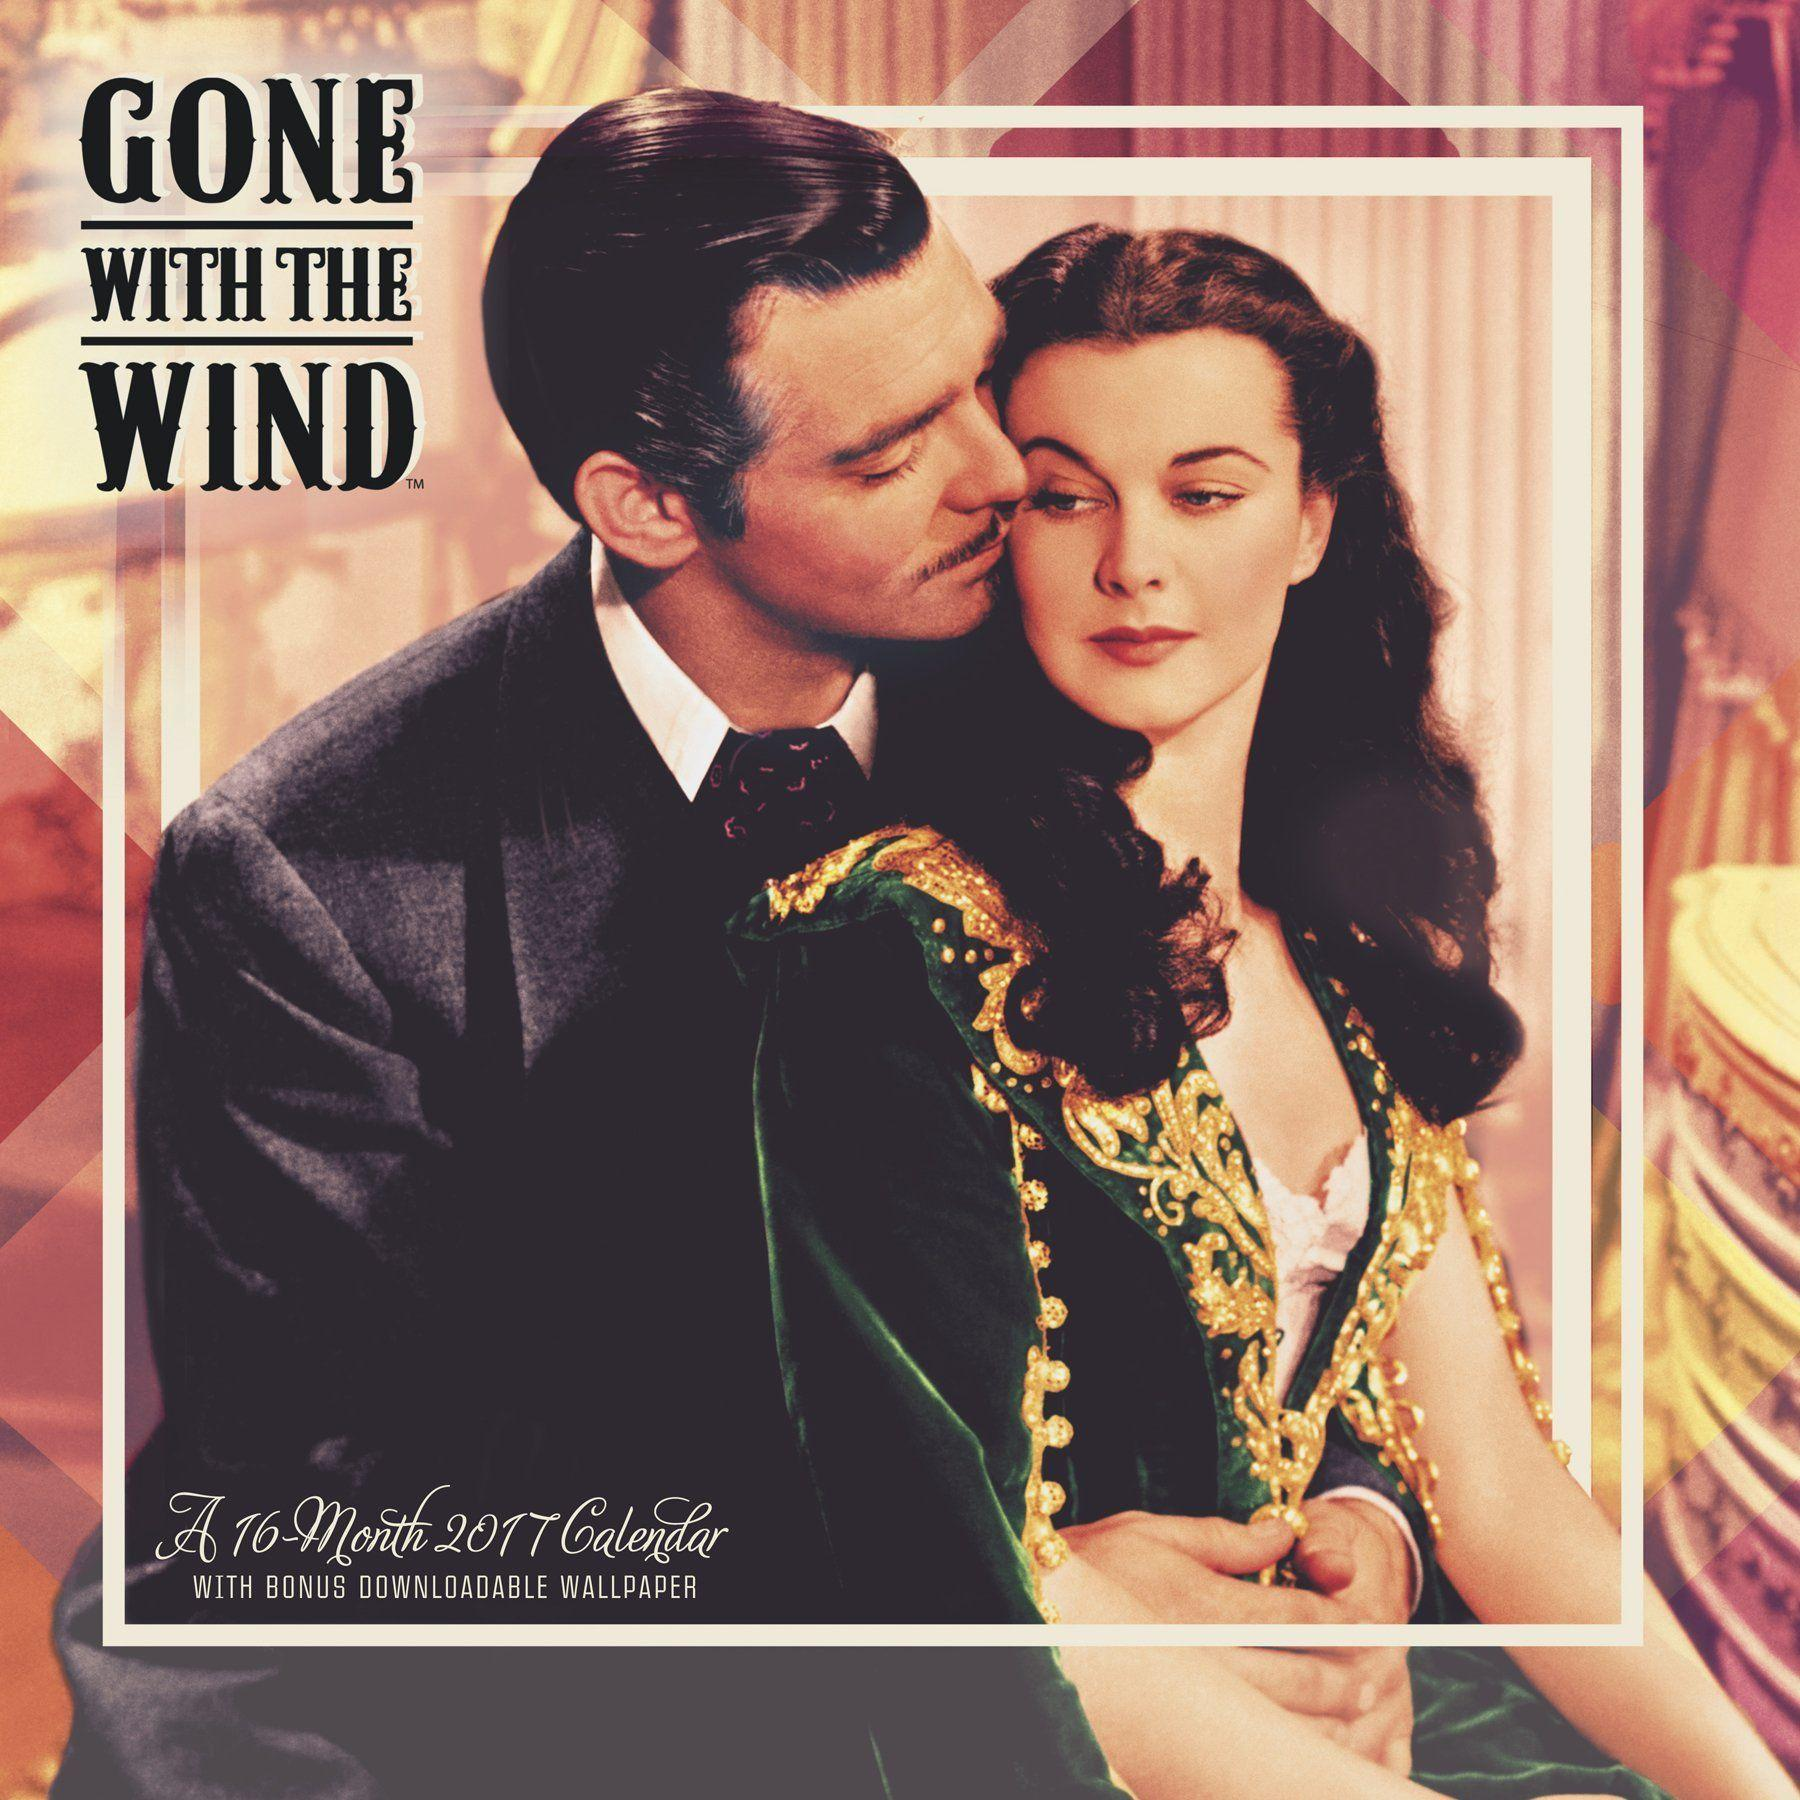 Salacious secrets lay behind the glamorous life of gone with the wind star vivien leigh